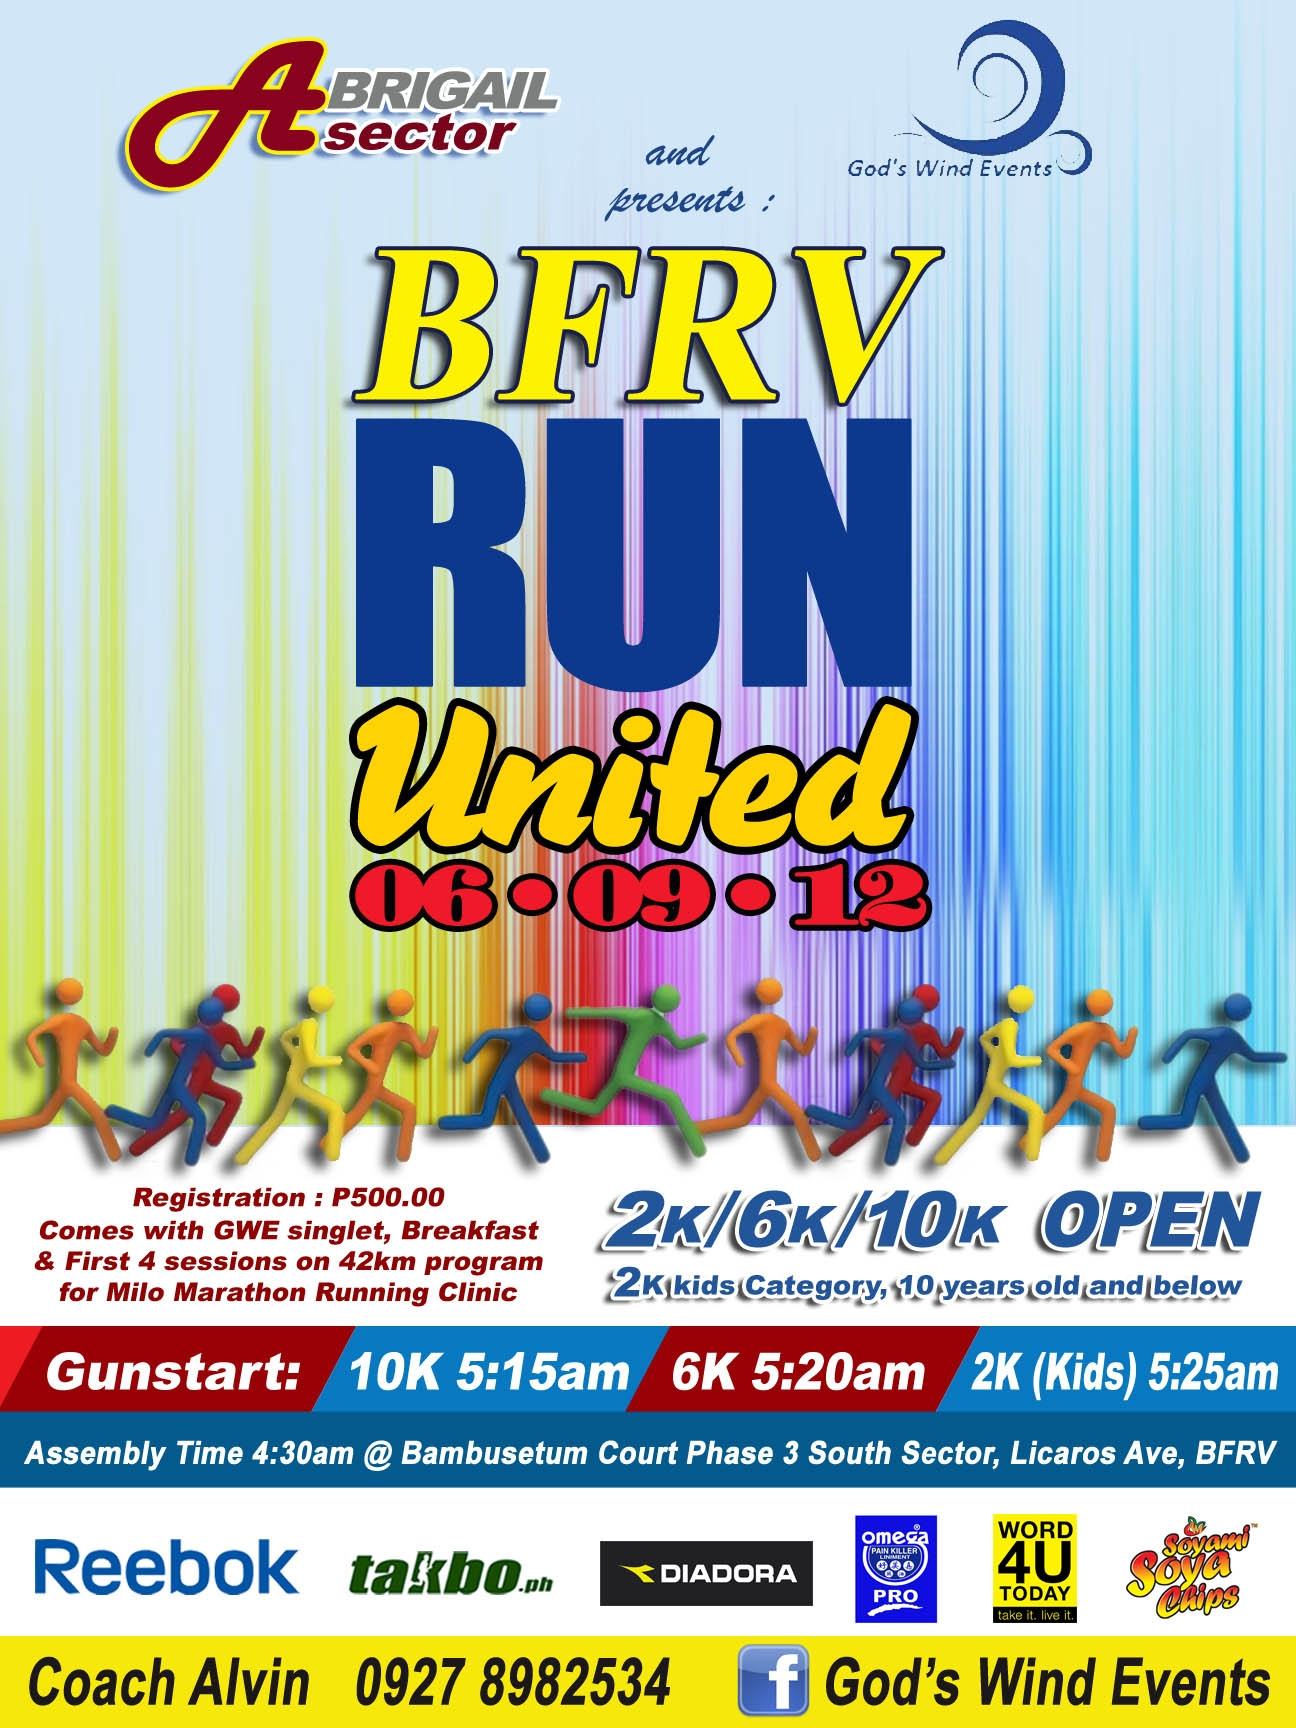 BFRV Run United 2012 race results and photos